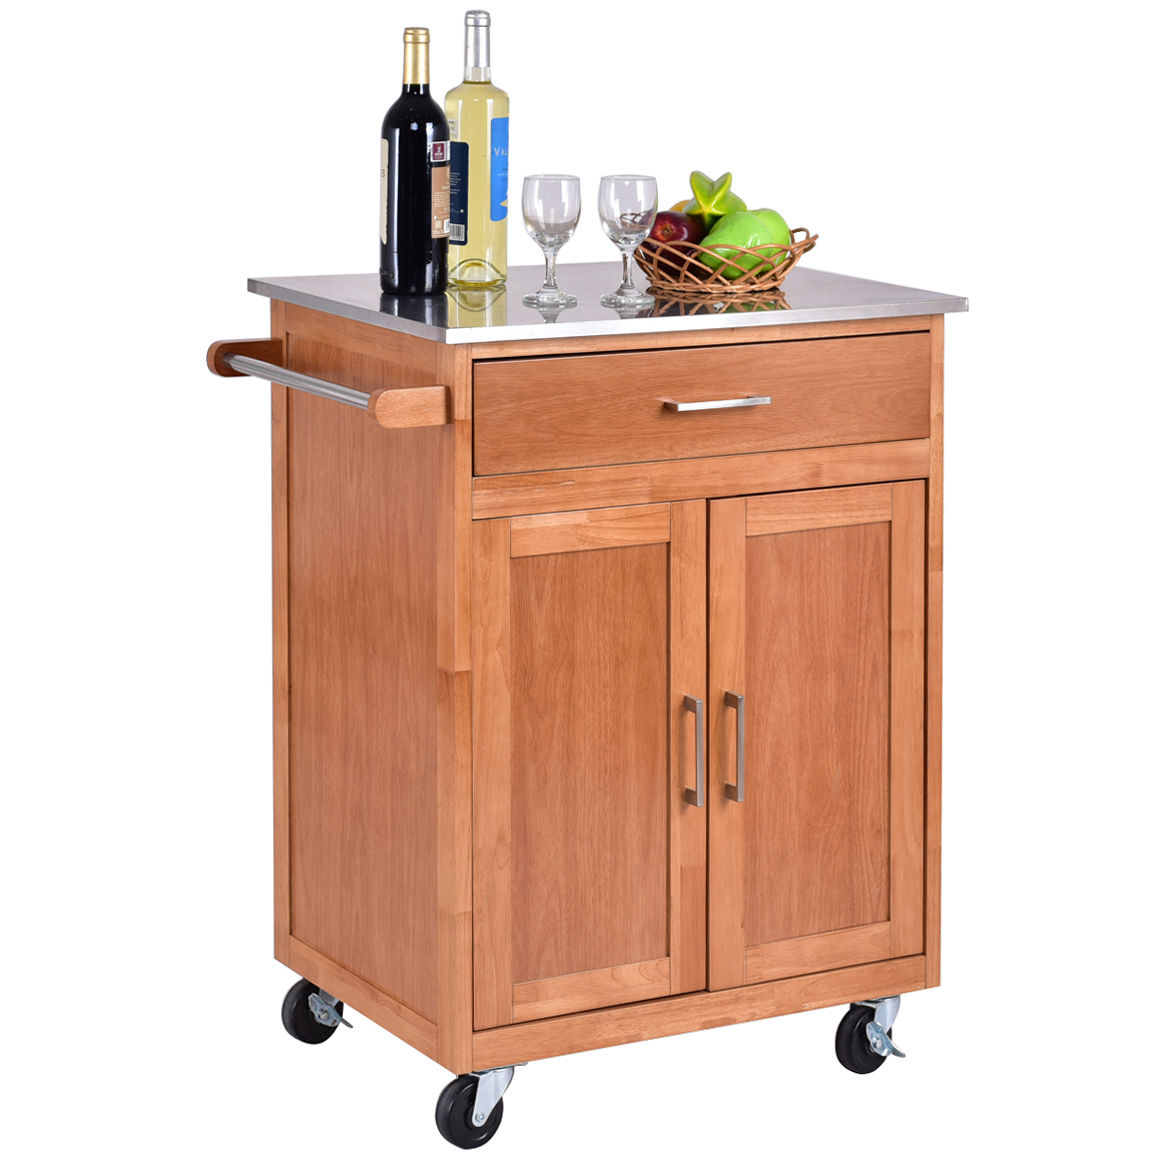 wooden kitchen cart cabinet doors with glass fronts wood trolley stainless steel top rolling storage island